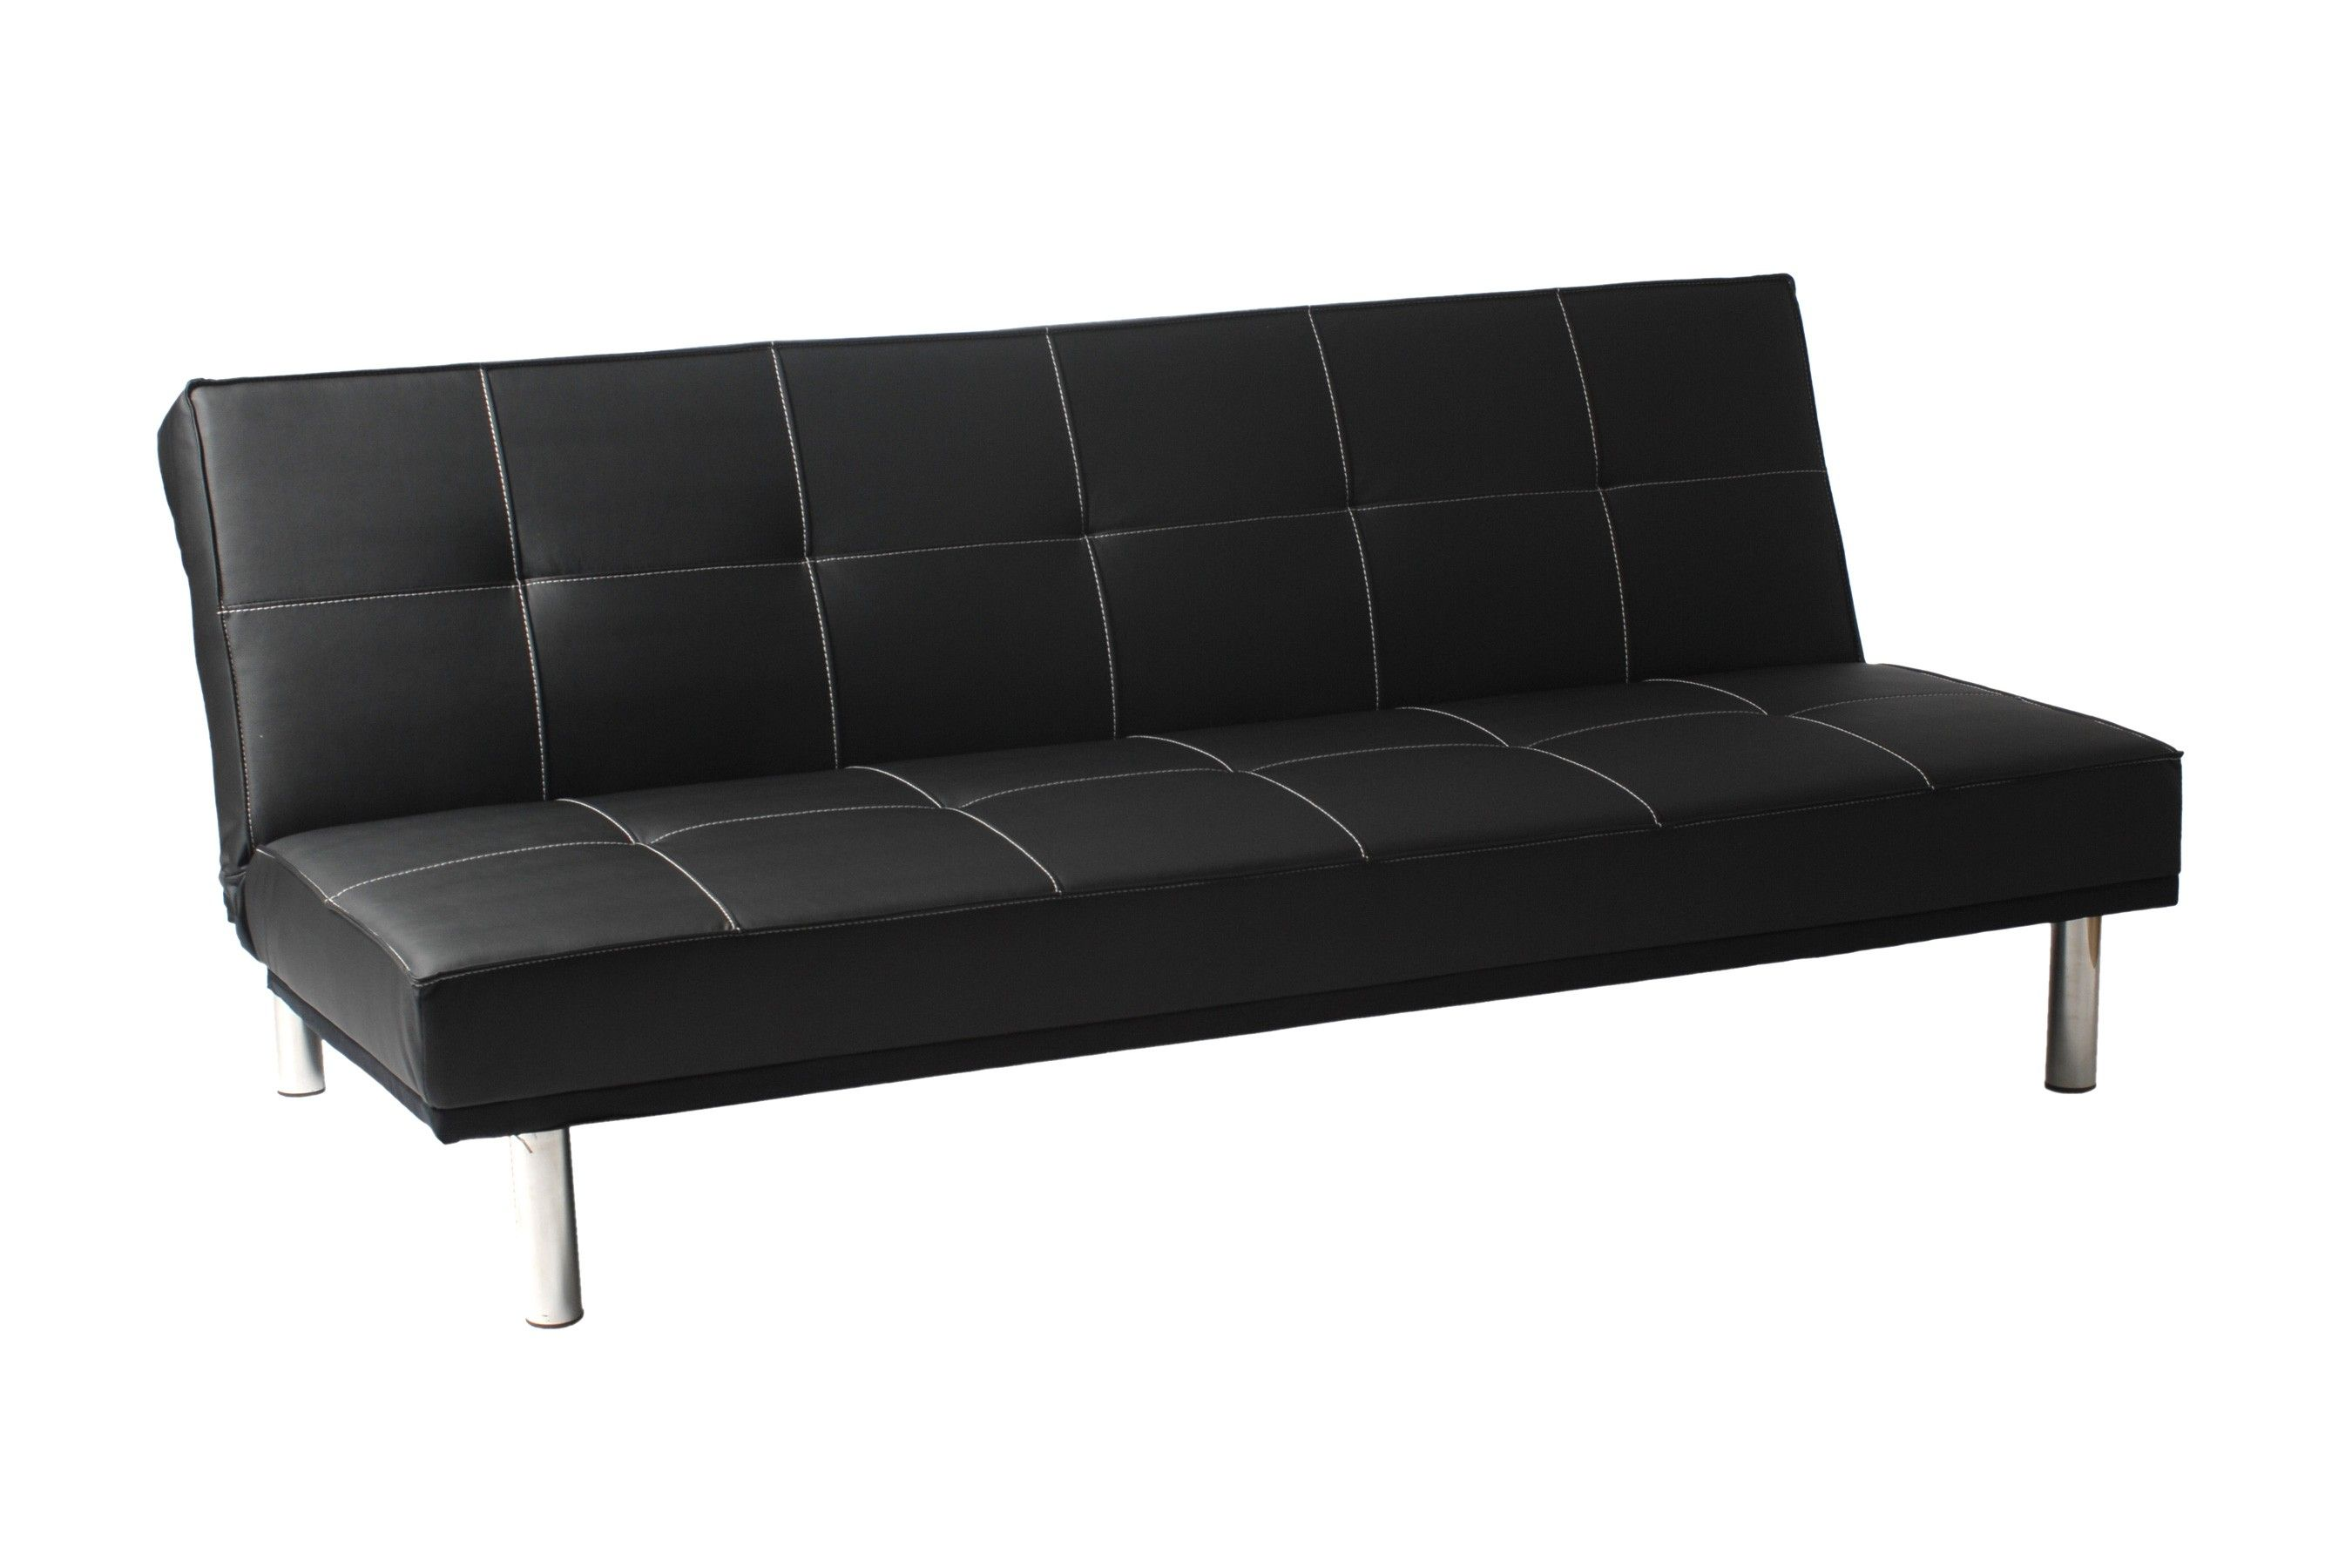 Costco Euro Style Sleeper Sofa Sectional Bed Rooms To Go Taraba Home Review